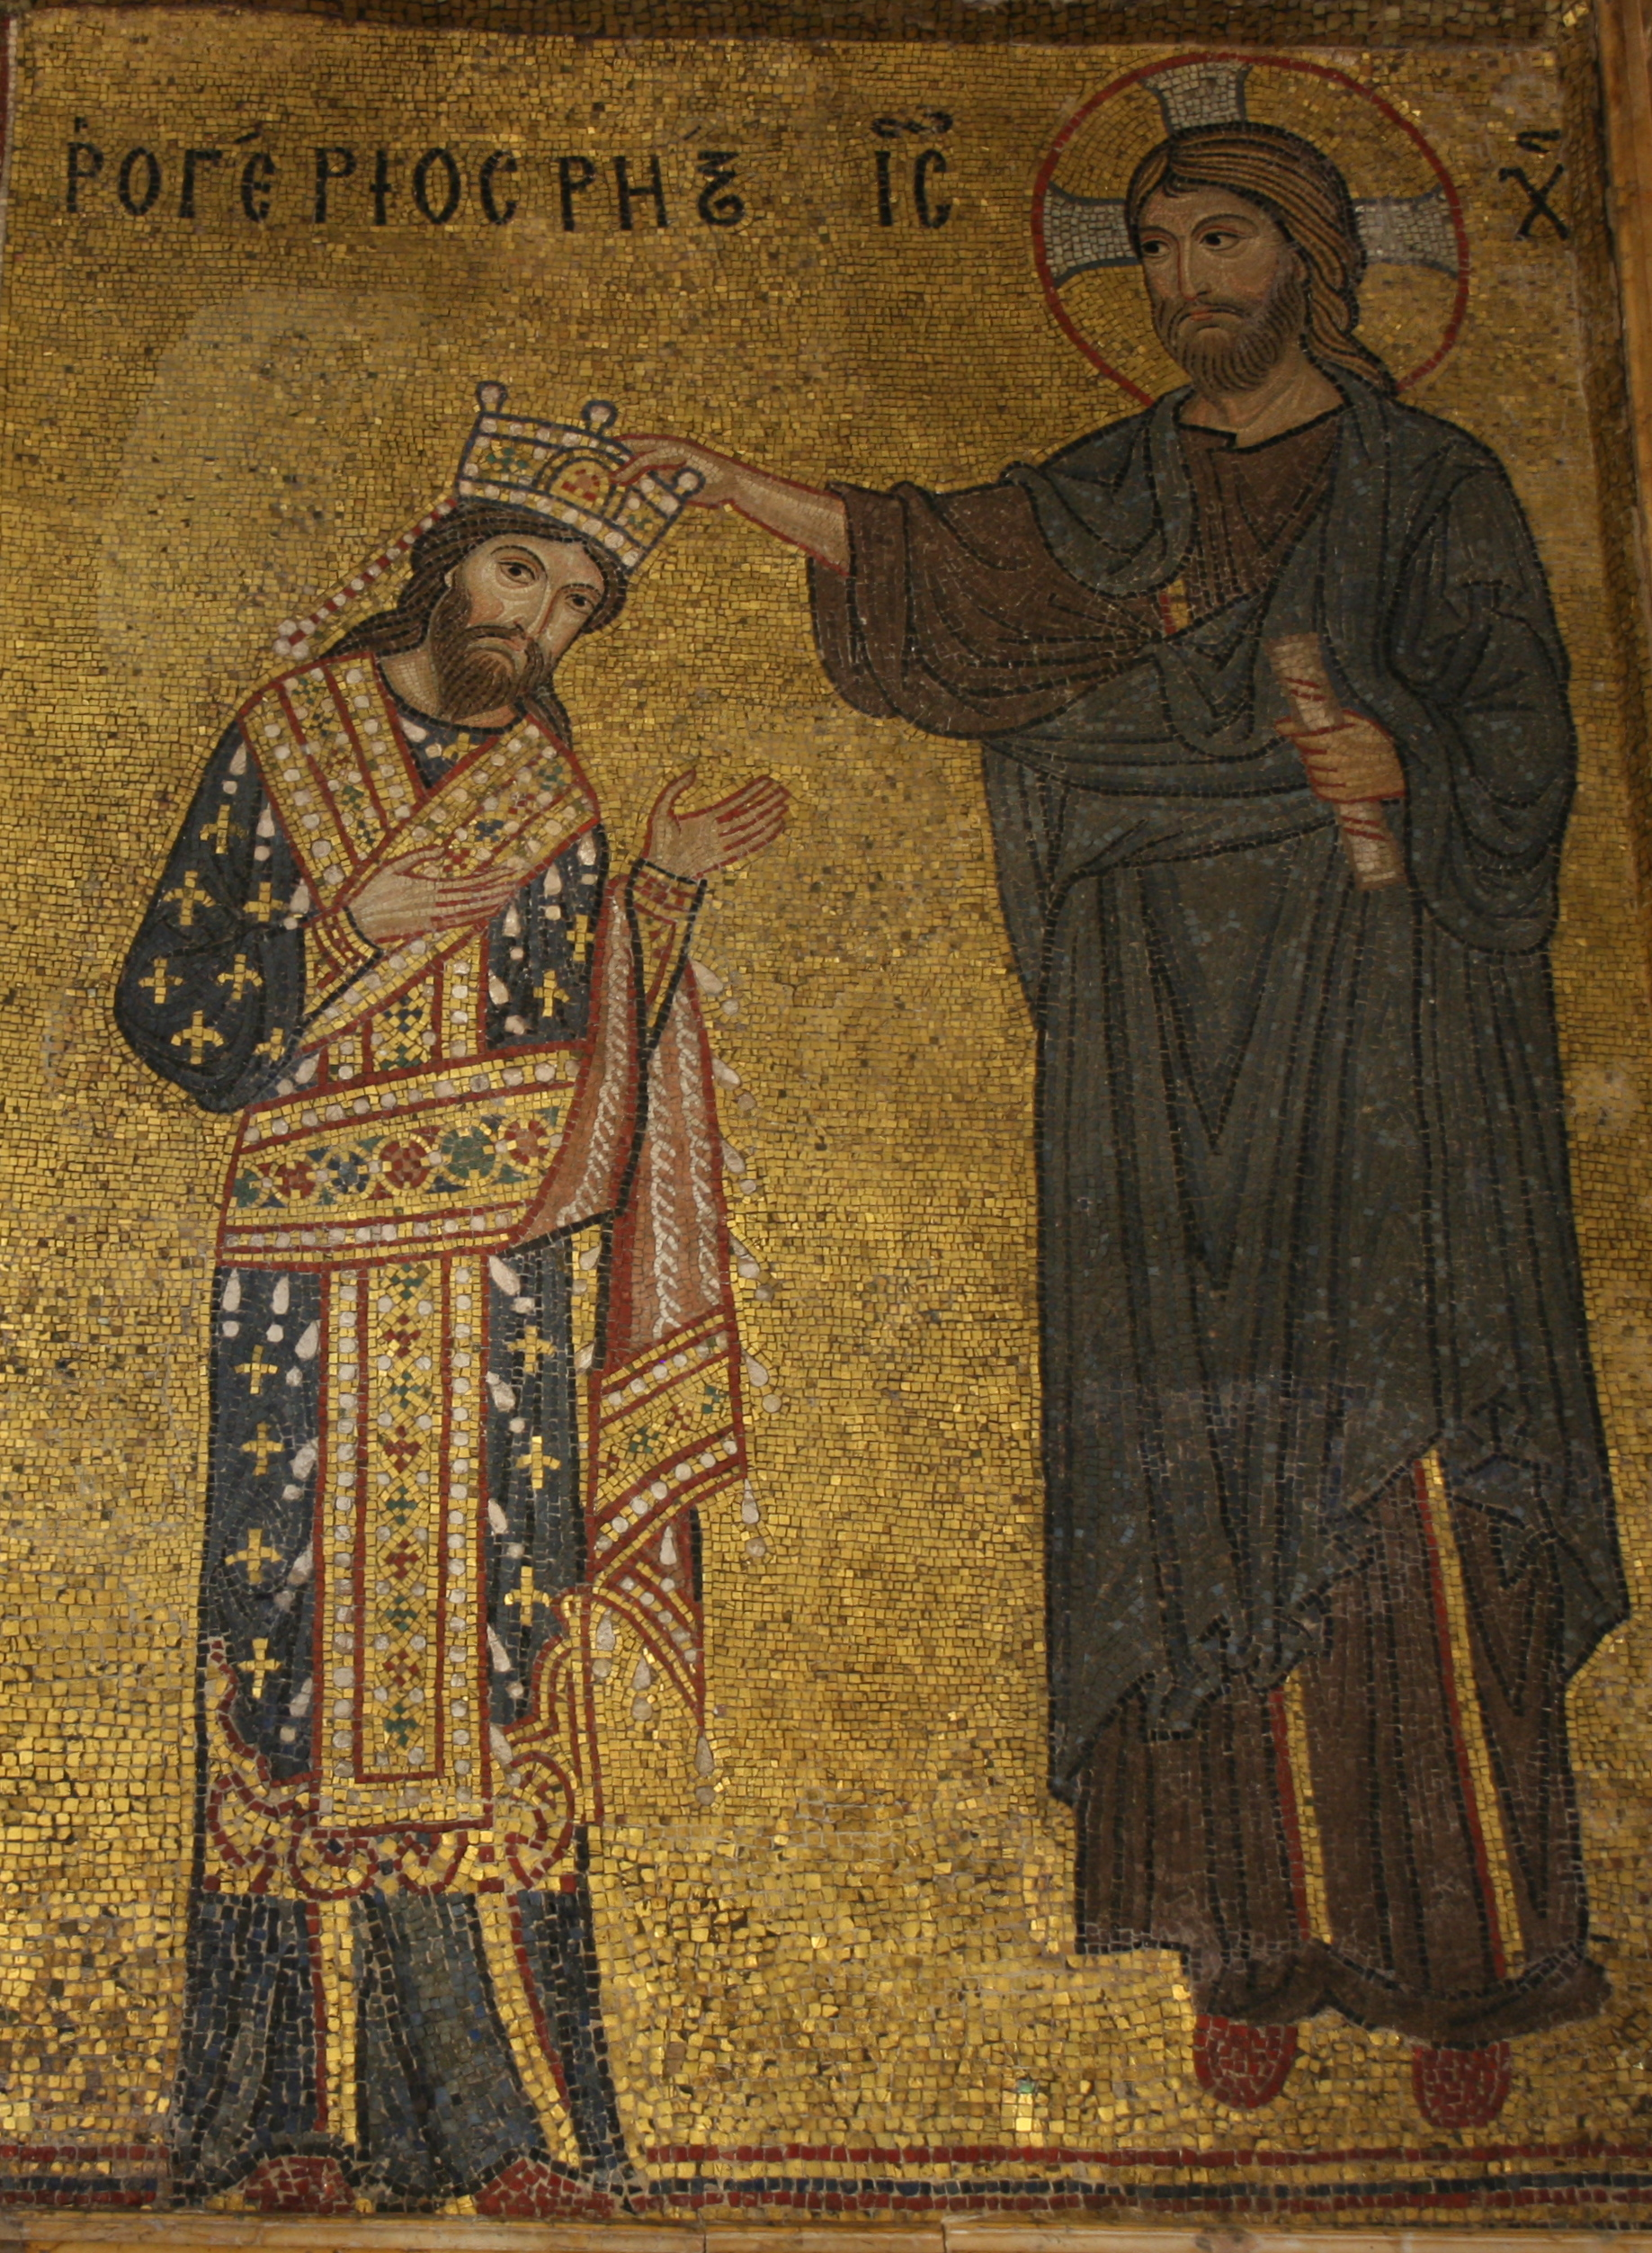 Roger II crowned king of Sicily by Jesus Christ in a mosaic in Palermo's church of Santa Maria dell'Ammiraglio